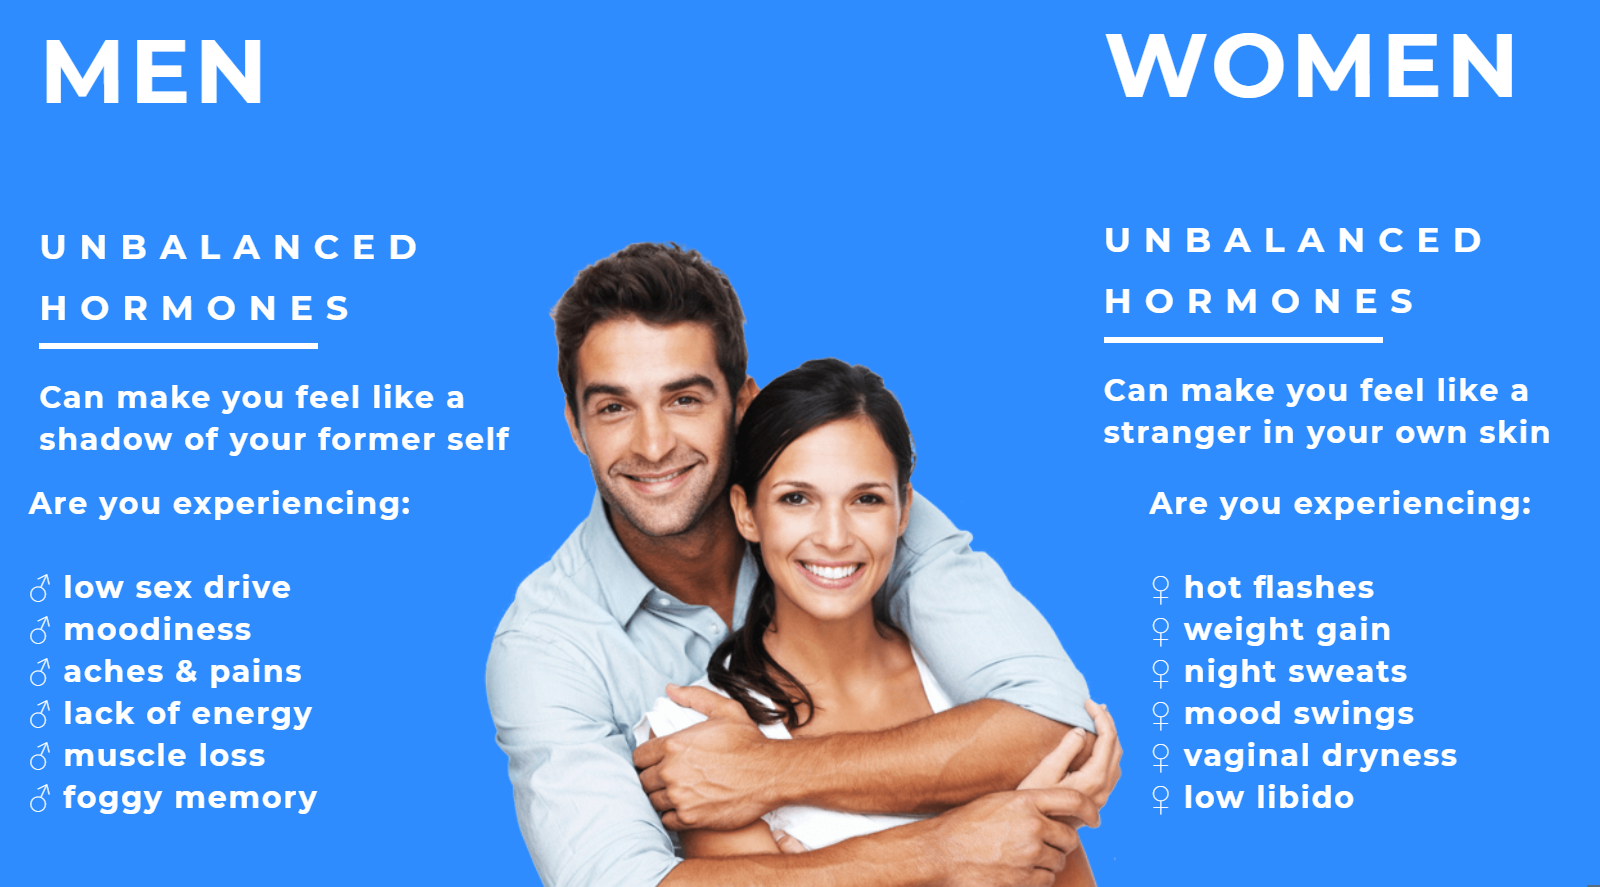 Hormone Replacement Therapy Hrt - Palm Beach Medical-6506